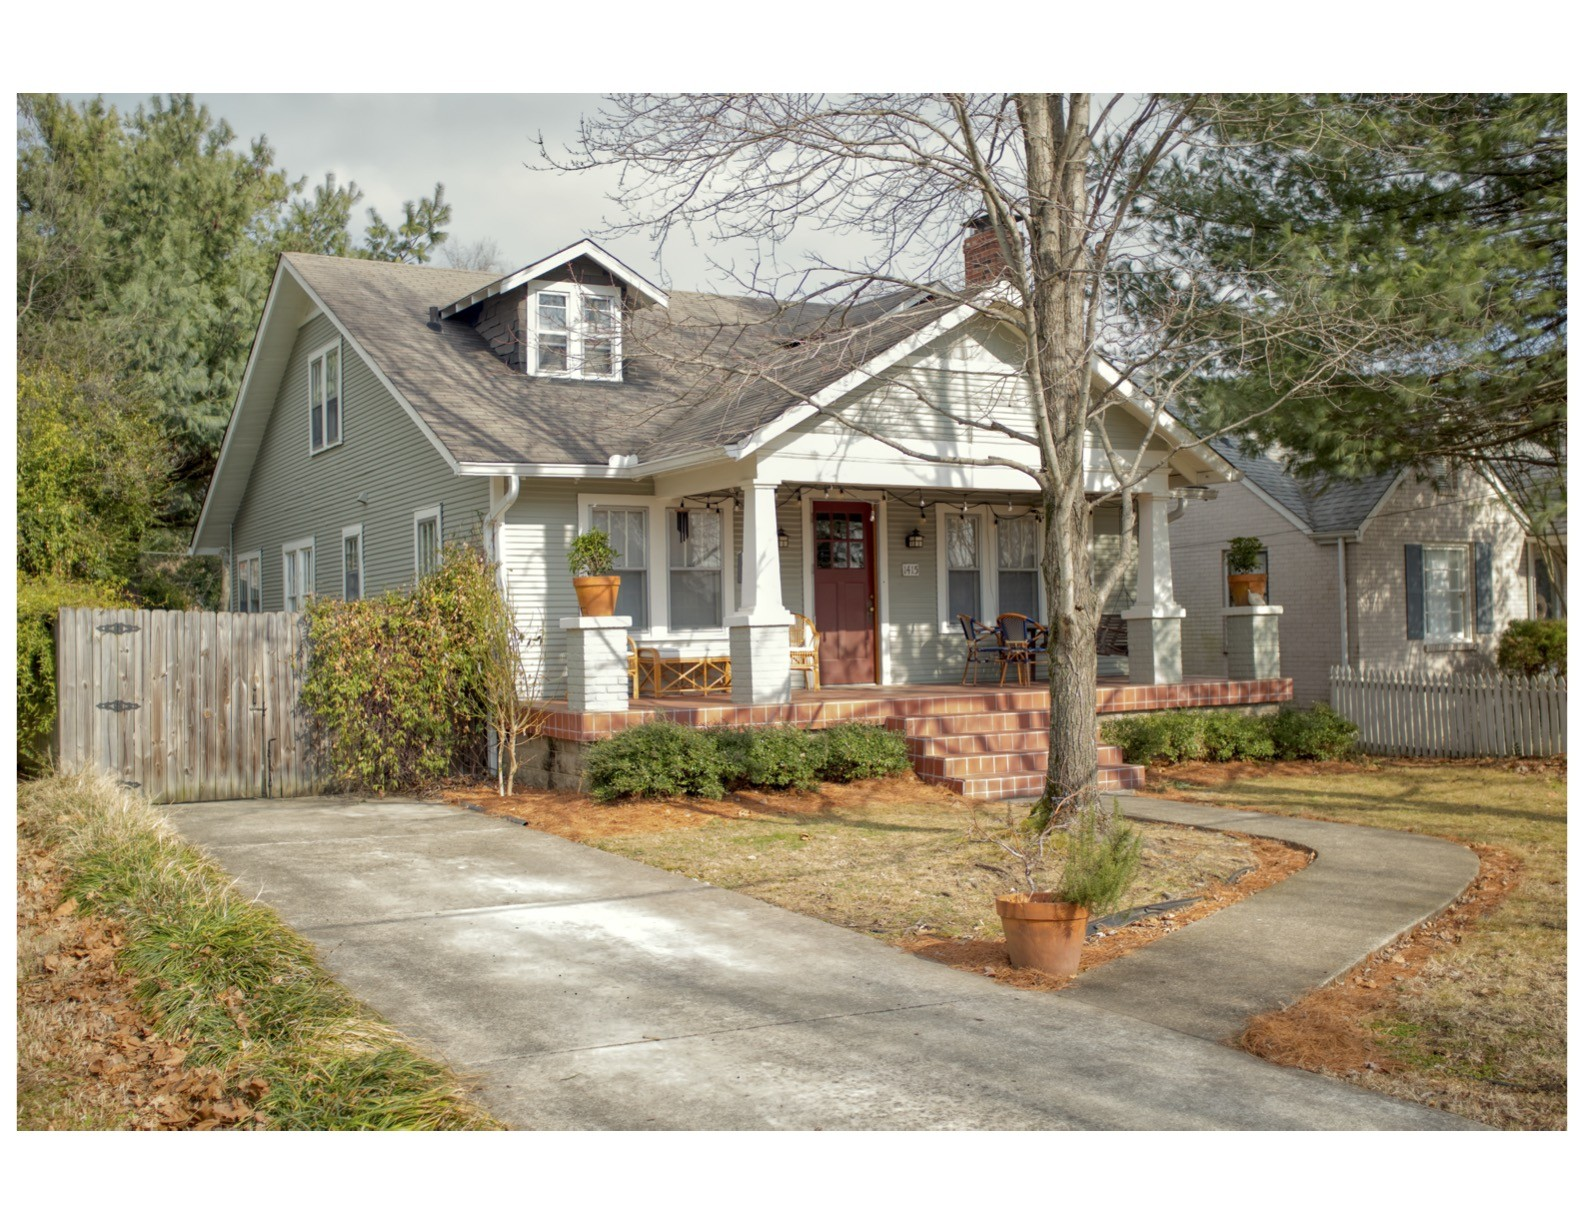 Bright & charming 1920s Craftsman bungalow sits on a quiet street in the heart of E. Nashville.  Original H/W floors, ample attic & bsmt storage, spacious, private backyard & off-street pkg on a fully-paved driveway.  A 300sf detached bldg provides the perfect space for a recording studio, woodworking shop or any hobby/home interest.  Zoned for a 750sf DADU & has priority zoning for esteemed Lockeland ES.  Quintessential E. Nashville front porch & walking distance to 5 Points, bars, restaurants.